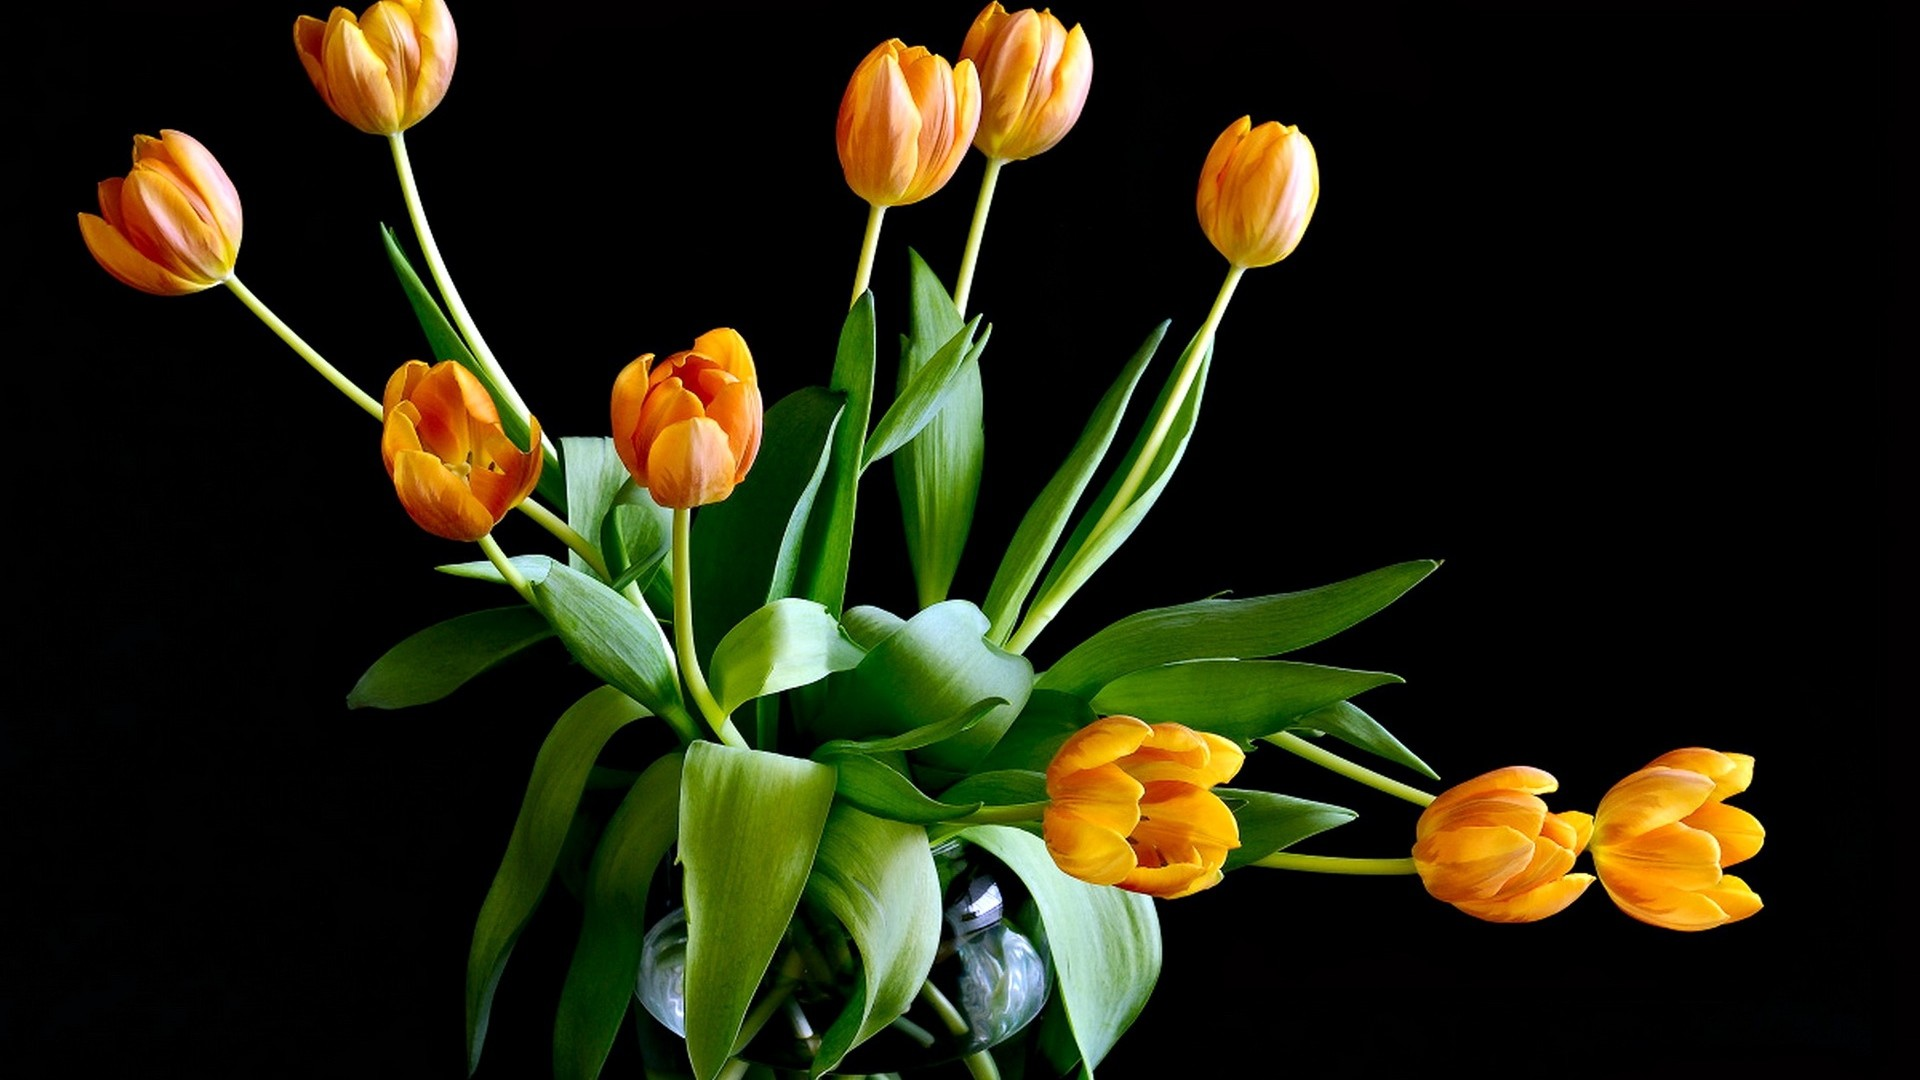 Get the latest tulips, flowers, leaves news, pictures and videos and learn  all about tulips, flowers, leaves from wallpapers4u.org, your wallpaper  news …